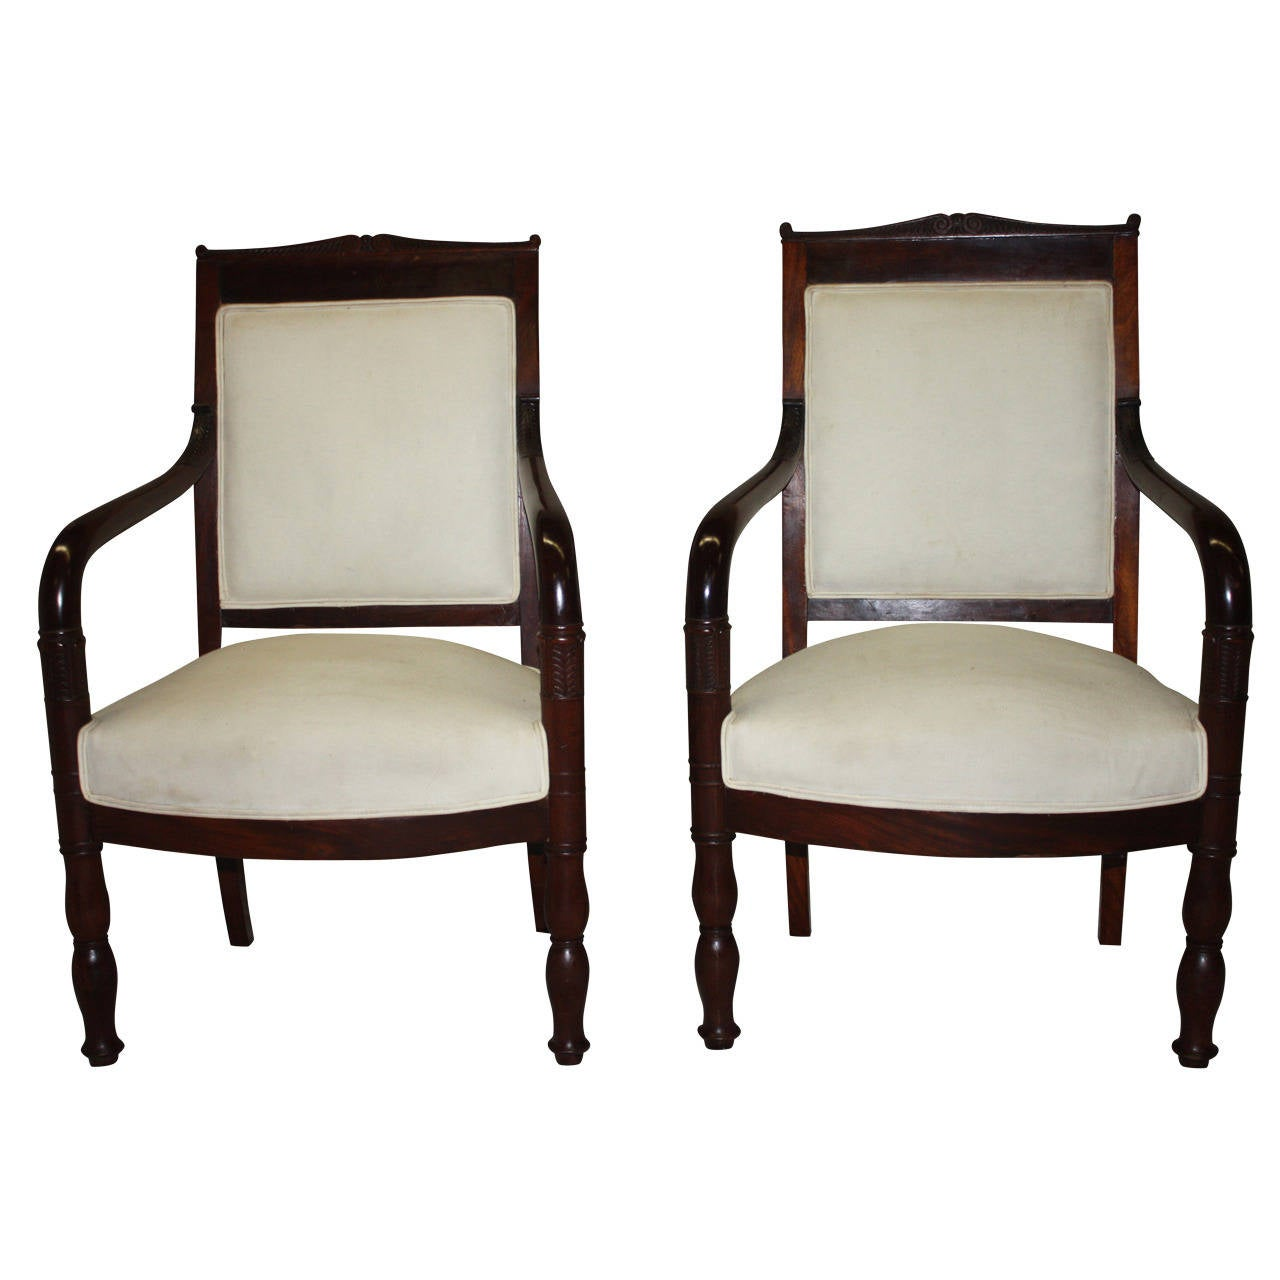 Early 19th Century Pair of Chairs